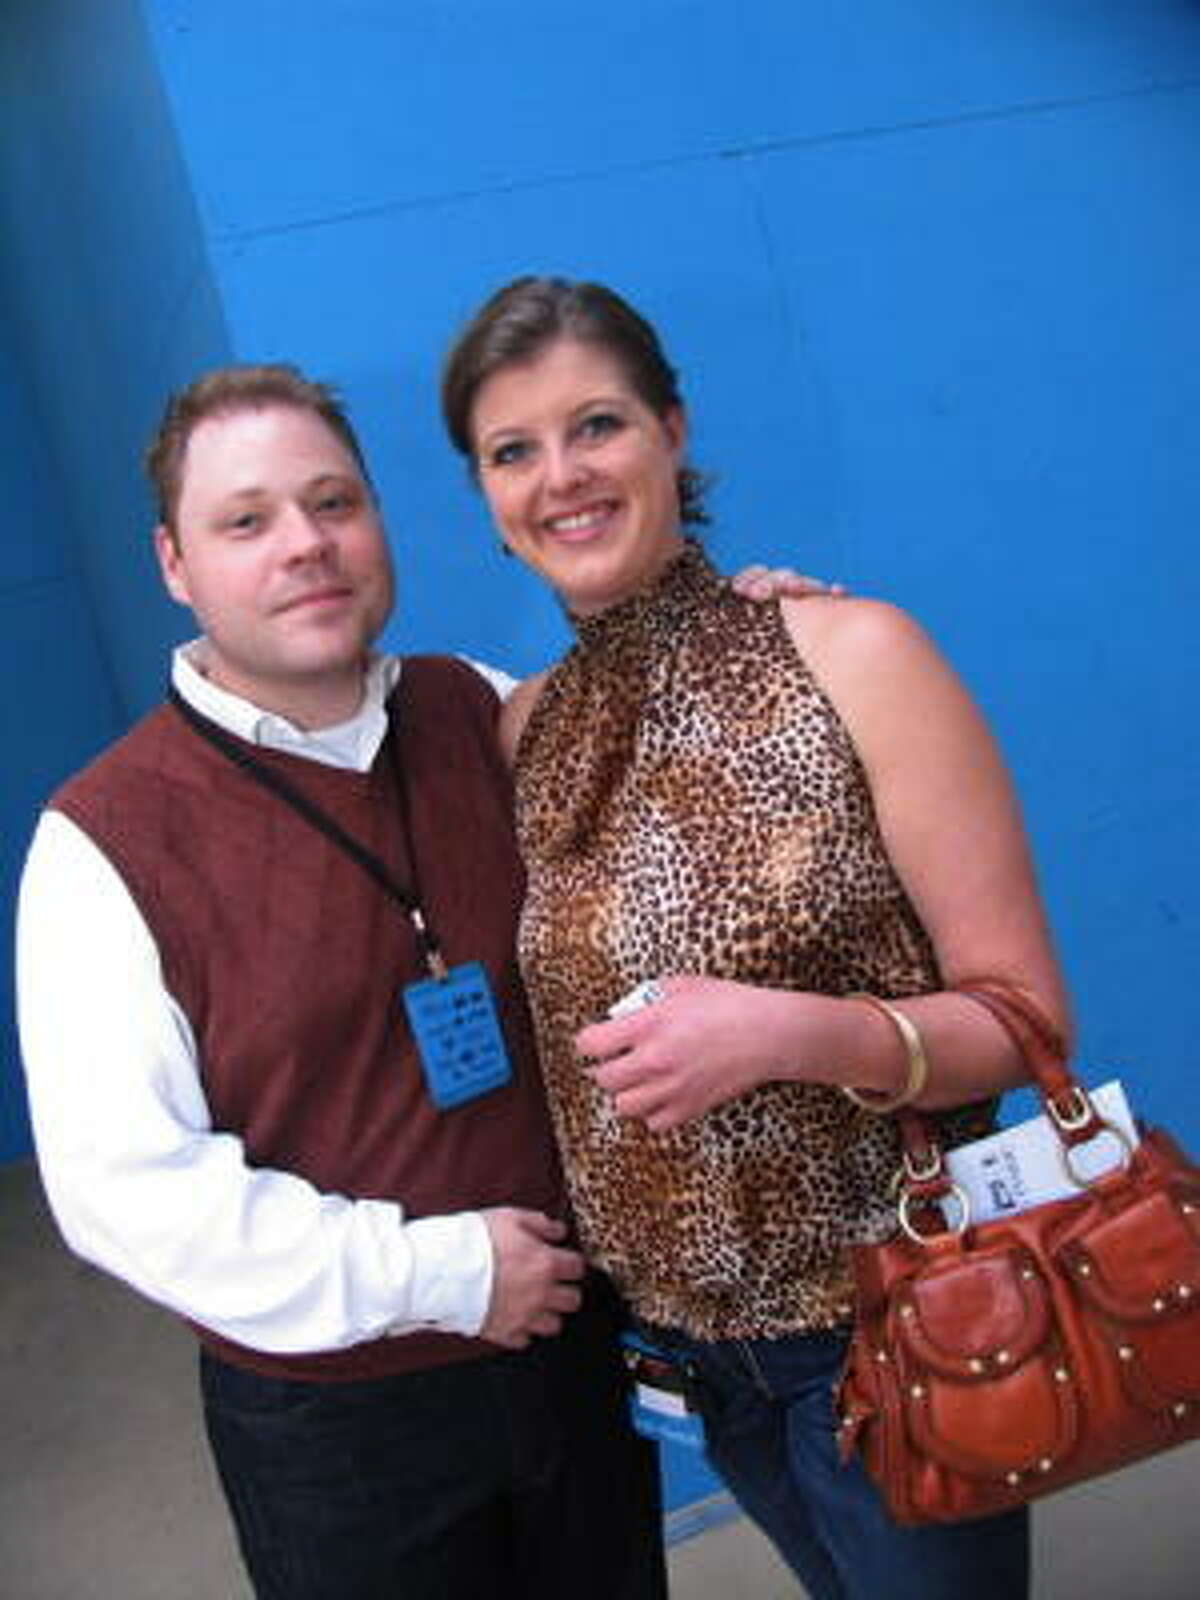 Adam Clay, left, and Carrie Jo Dennis